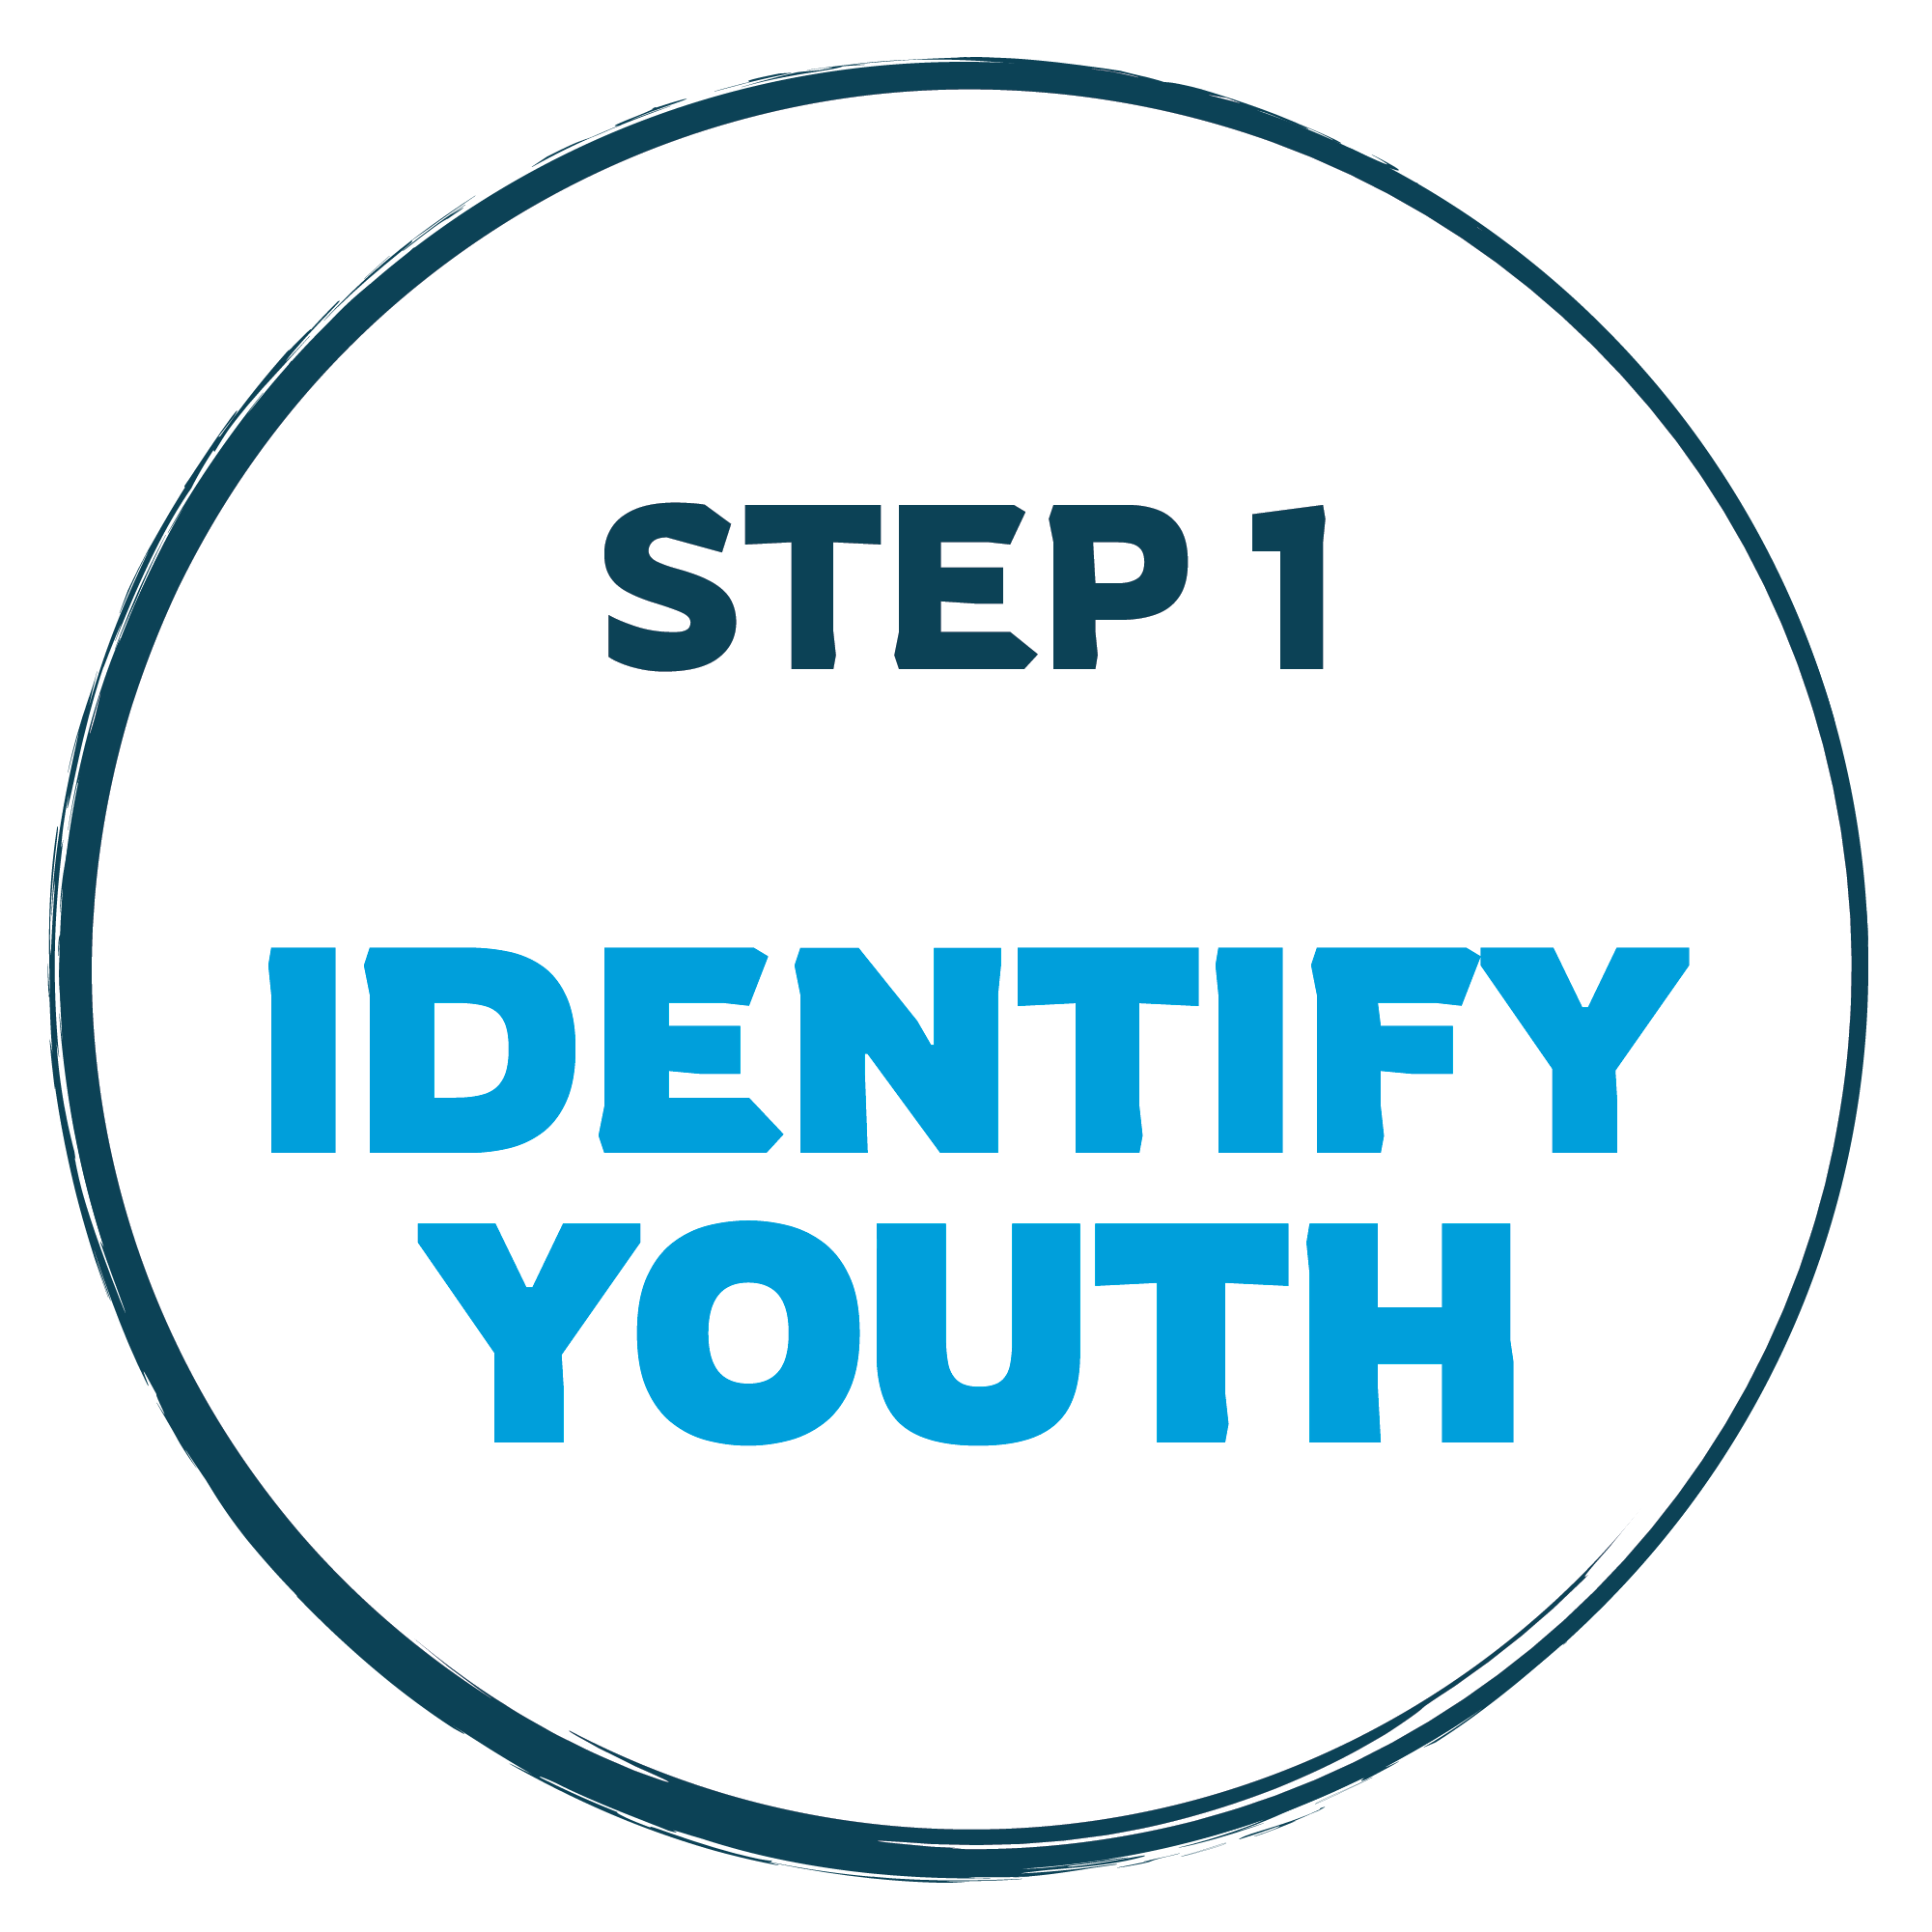 Step 1 Identify Youth graphic